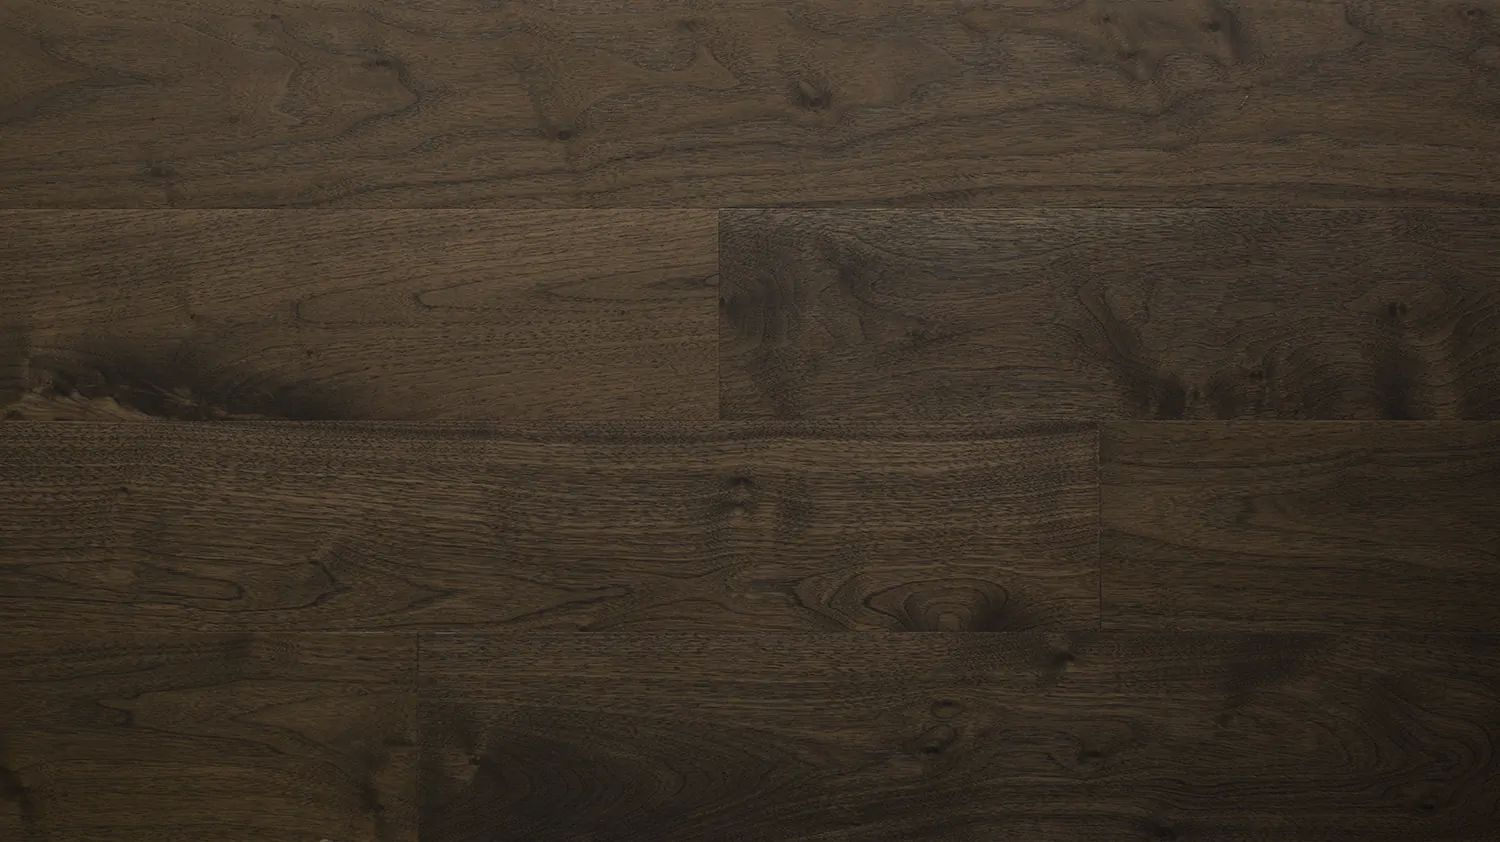 fake wood flooring options reviews dura seal hardwood floor finishes ...